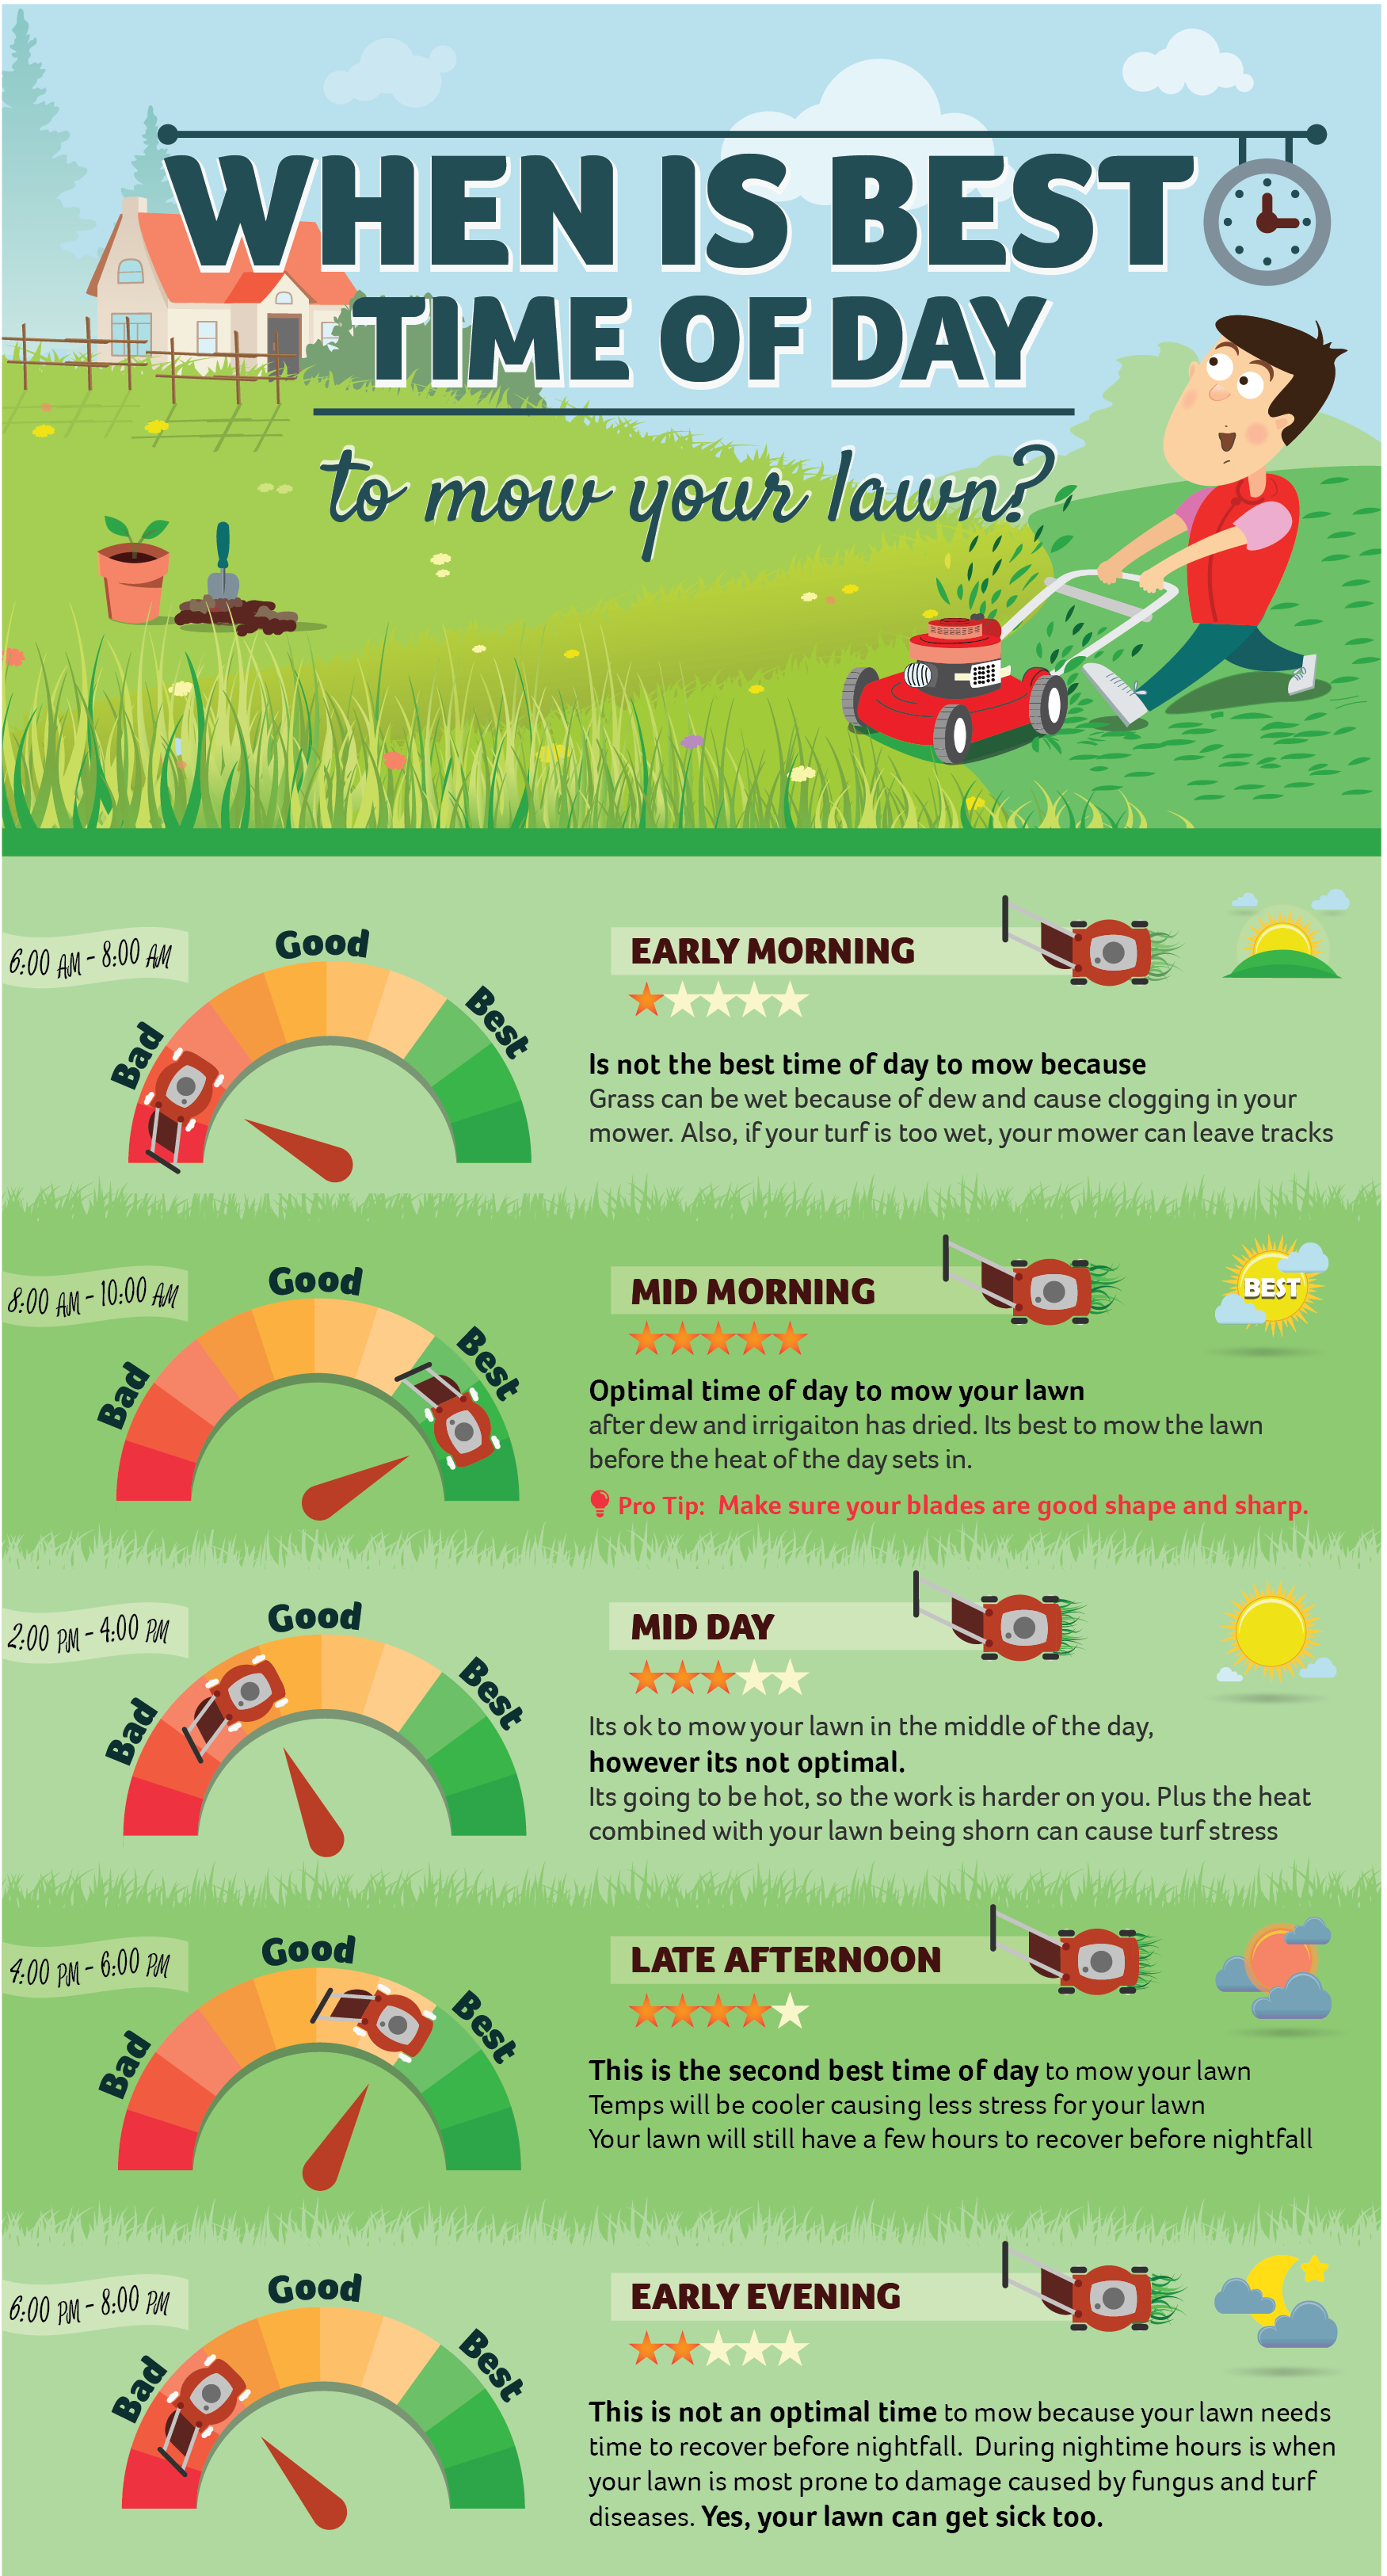 Best Time Of Day To Mow Your Lawn Read More Info By Clicking The Link On The Image Dogscaretips Lawn Care Lawn Care Business Lawn